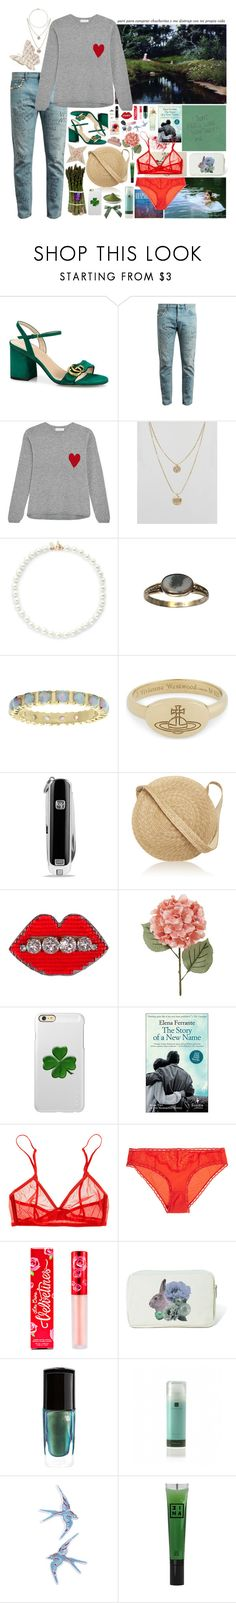 """I got lost in the aisles because I couldn't find these words"" by delfin-marijuanero ❤ liked on Polyvore featuring Gucci, Chinti and Parker, Pieces, Kenneth Jay Lane, Mia Sarine, Vivienne Westwood, David Yurman, Samuji, Shourouk and Incipio"